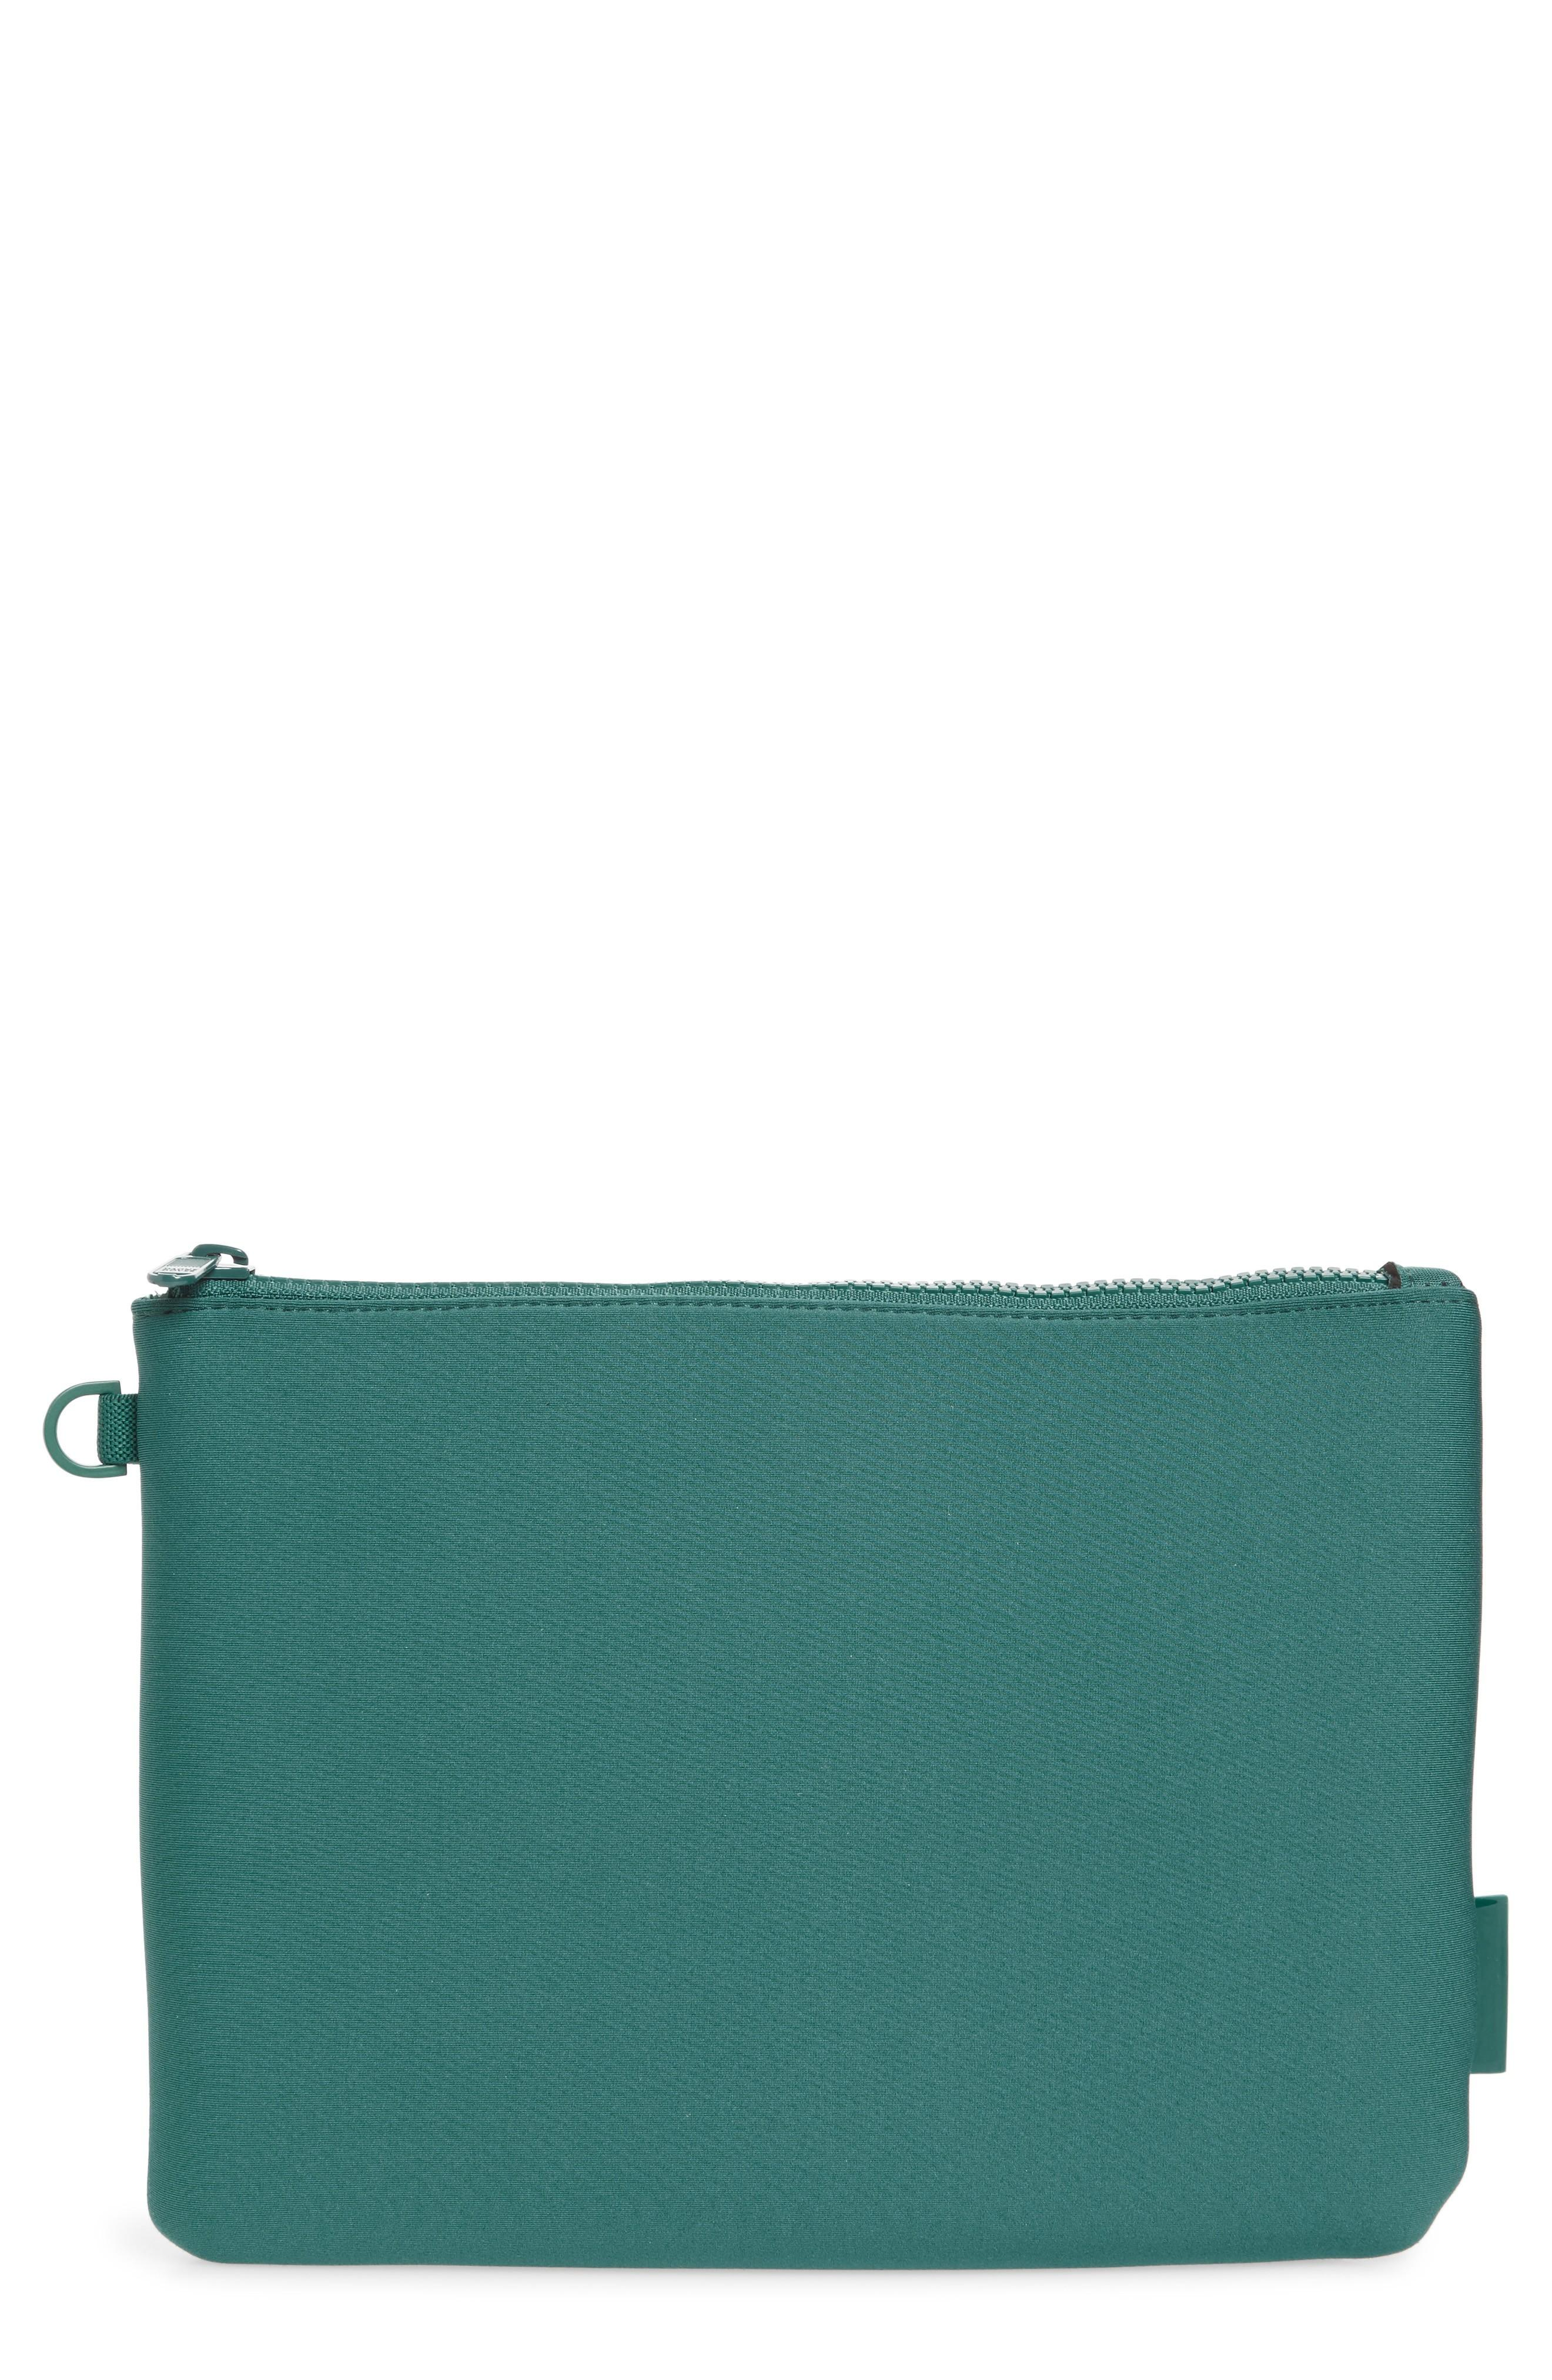 Dagne Dover Scout Large Zip Top Pouch - Blue/green In Palm